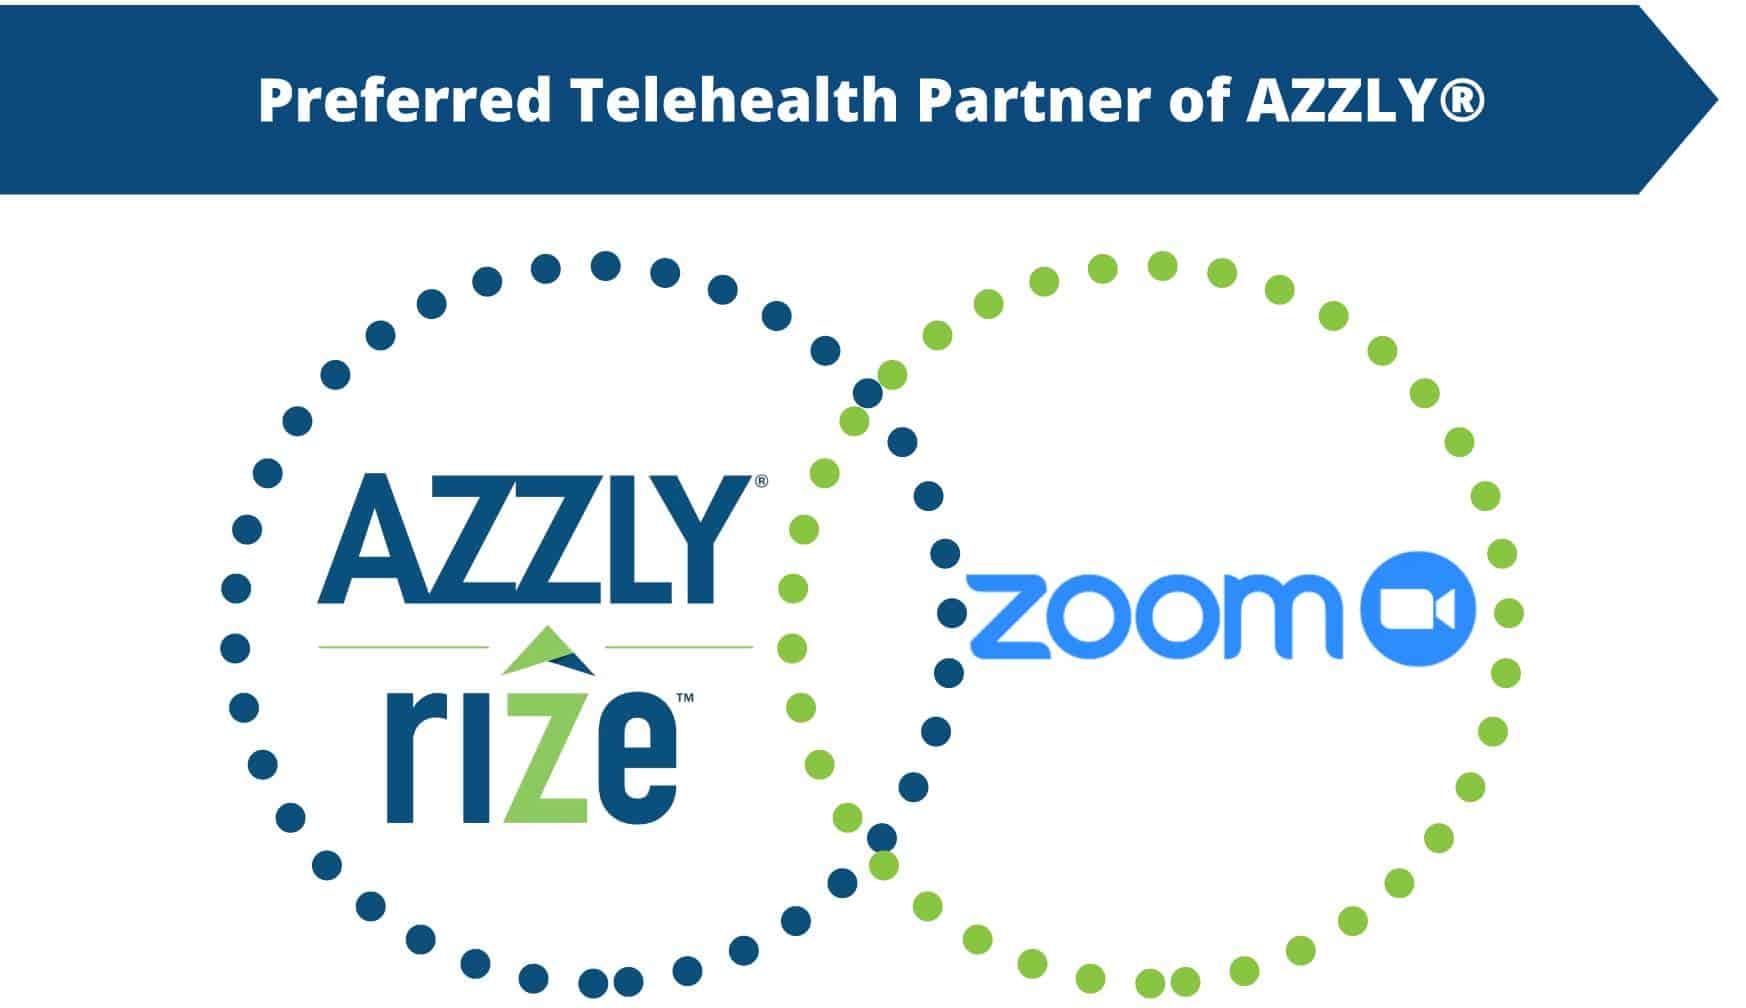 Coronavirus (COVID-19) Shows Us The Importance Of Telehealth. AZZLY® Is Partnering With Zoom® To Give You The Tools To Treat Your Clients Remotely.